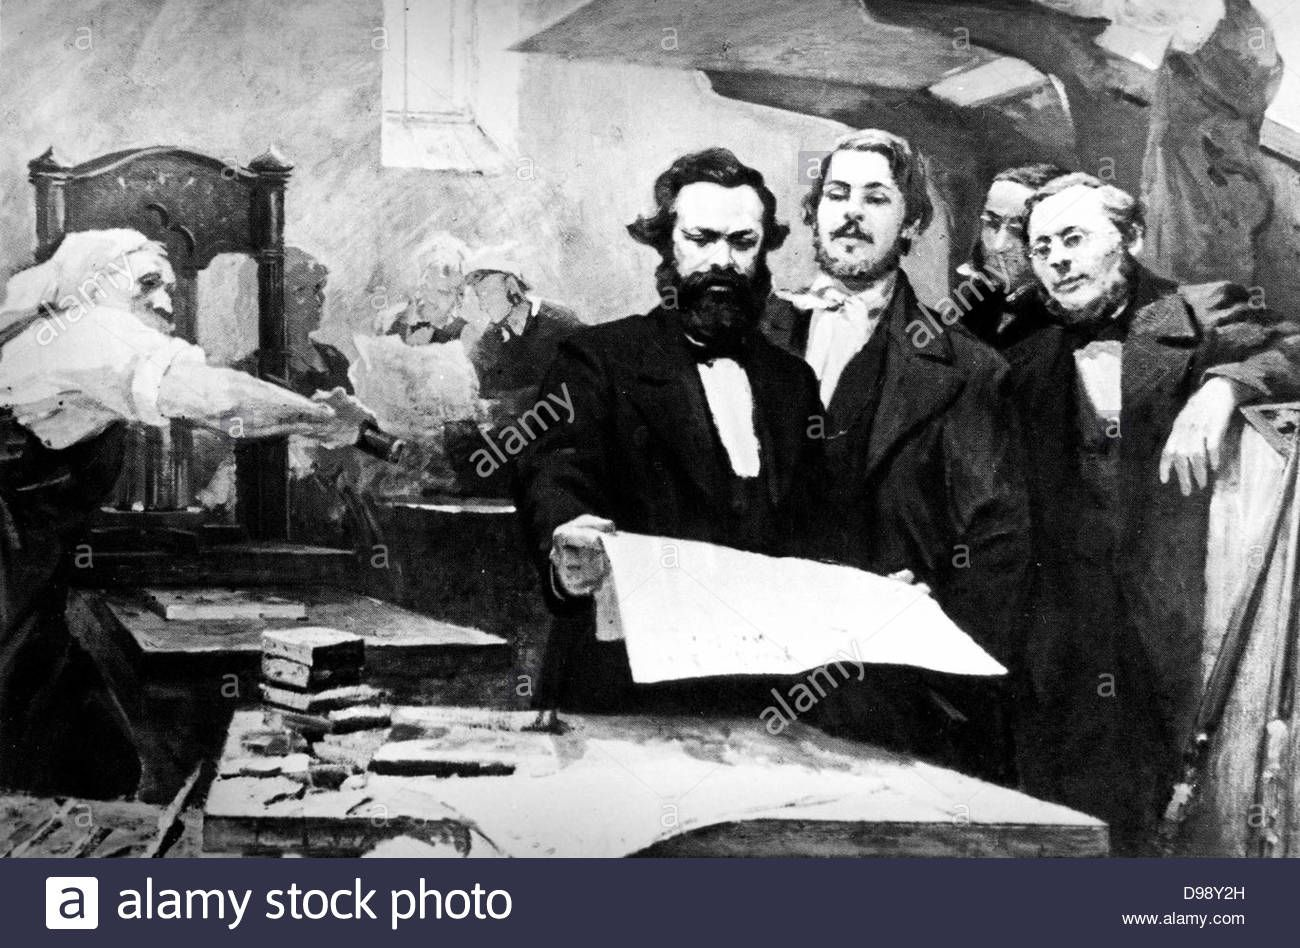 Karl Marx 1818 1883 Father Of Modern Communism German Political Social And Economic Theorist Marx Is Shown Is Shown With Stoc Karl Marx Stock Photos Photo